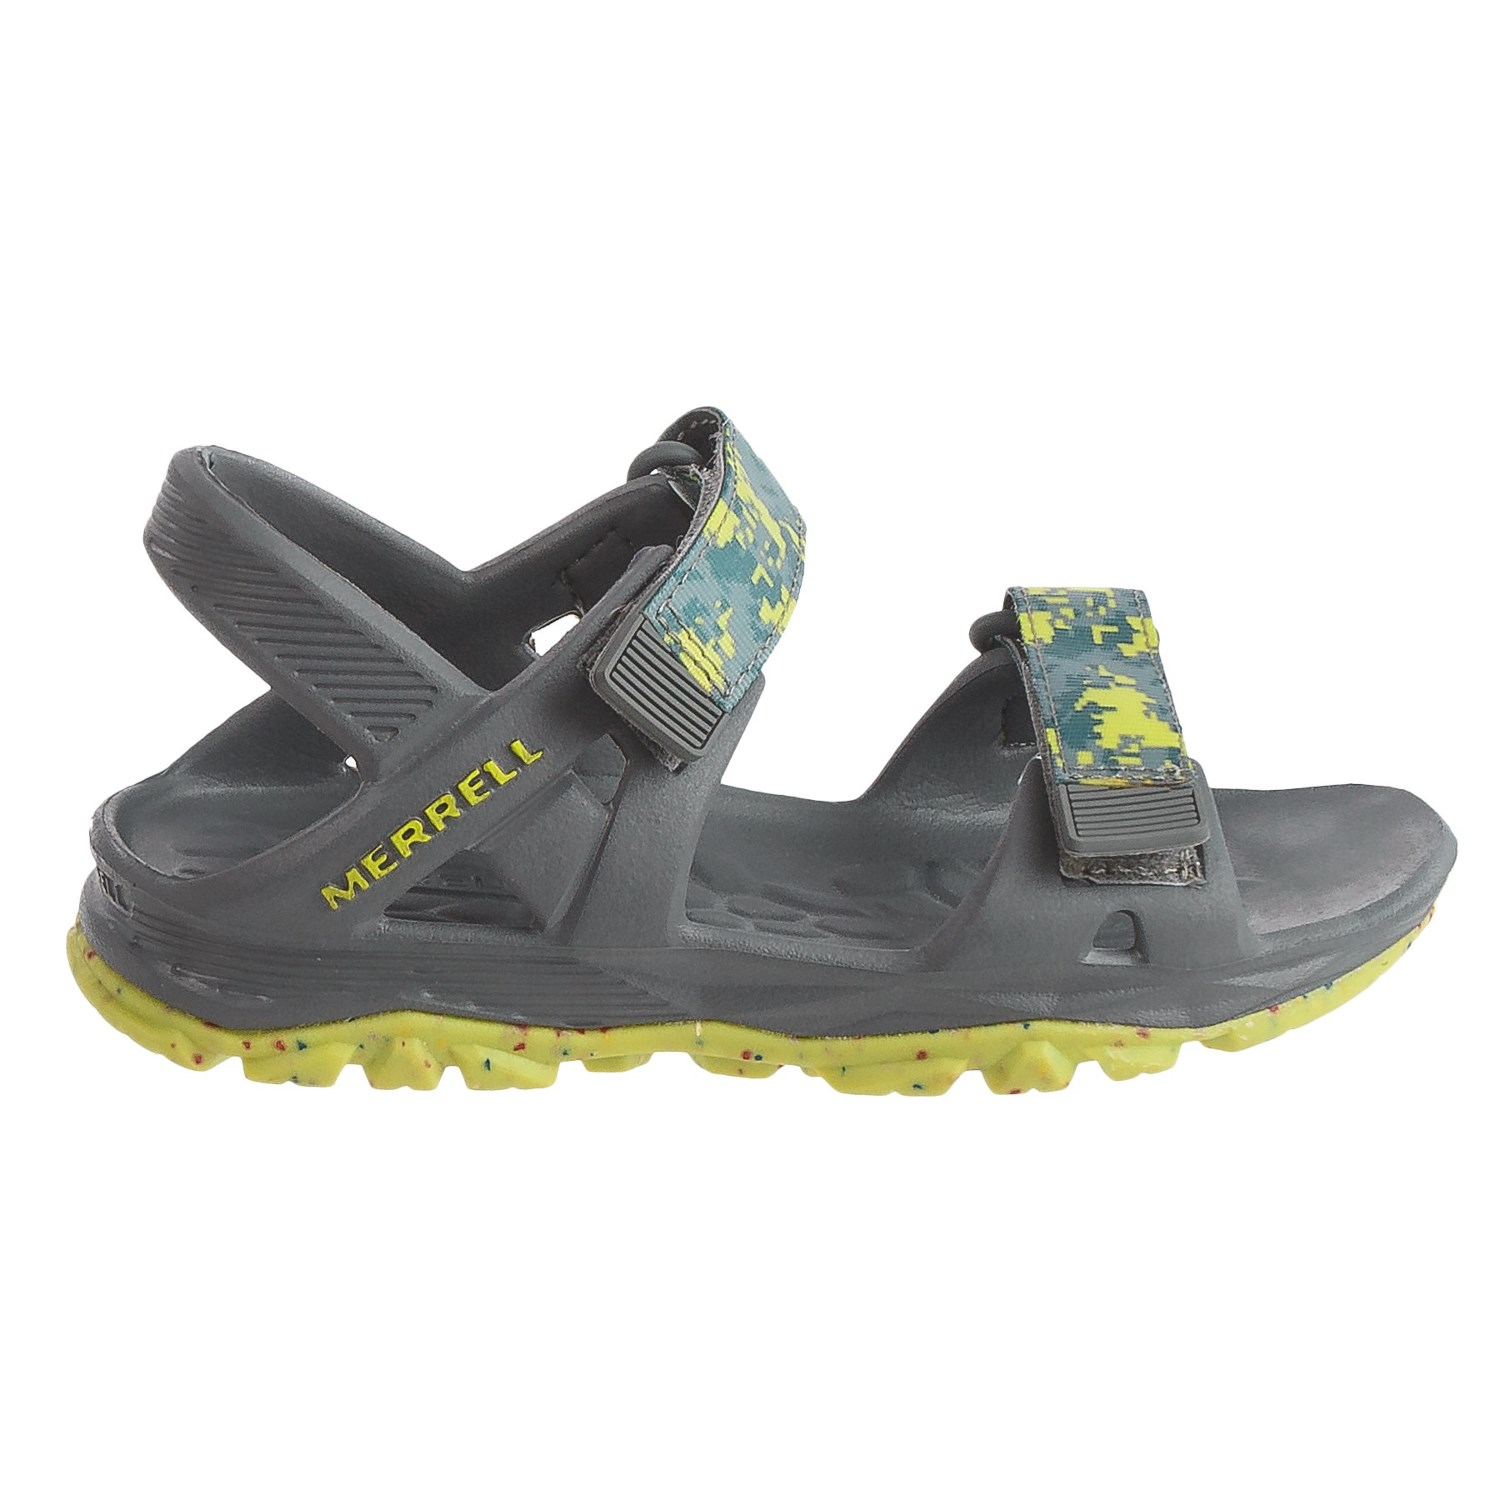 472251fdcbc1 Merrell Hydro Drift Sandals (For Infant and Toddler Boys) - Save 42%